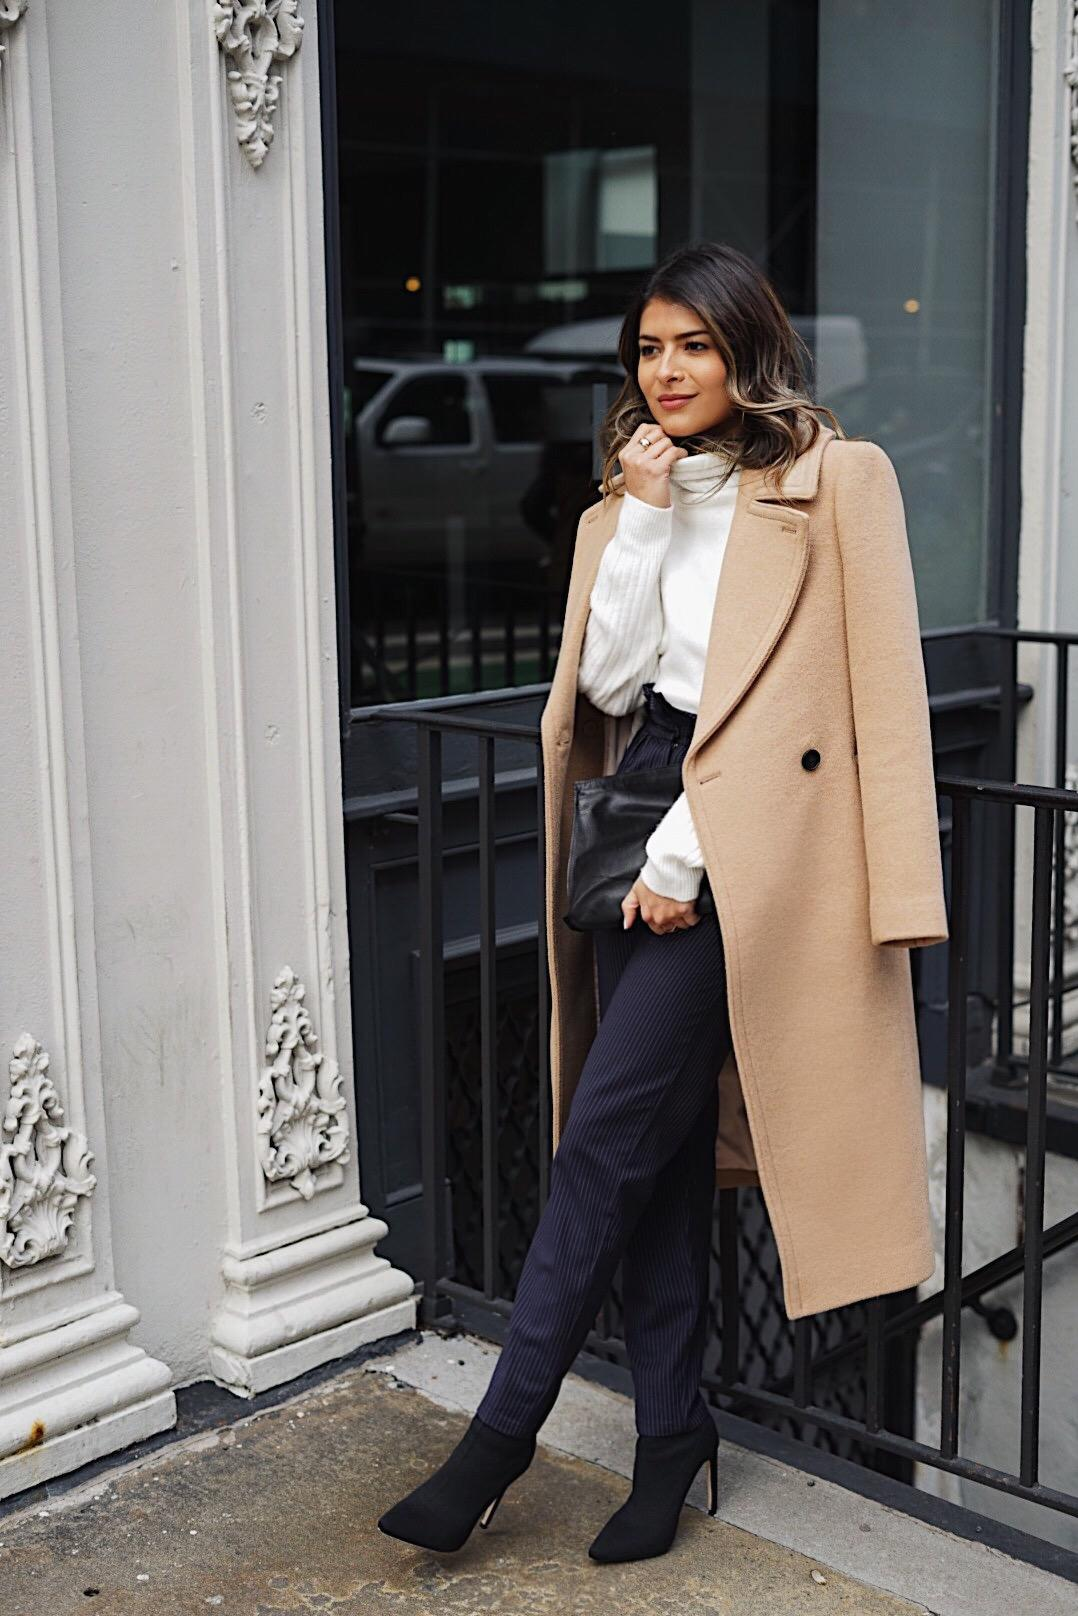 Pam Hetlinger styles high waisted navy and white striped trousers with a white turtleneck sweater and a camel suede coat.